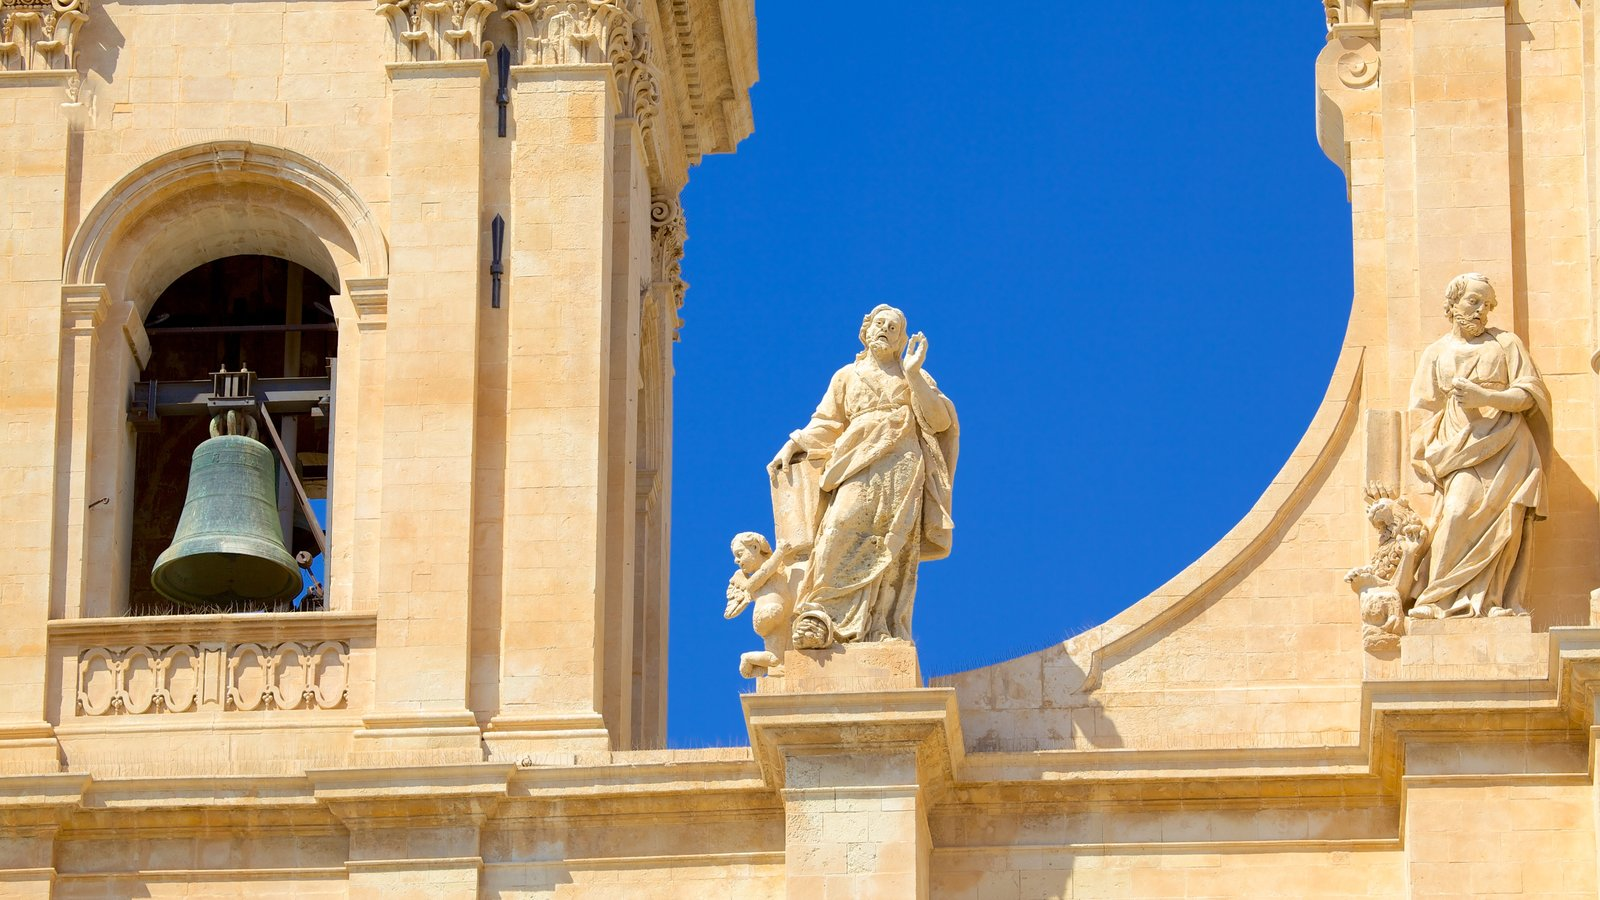 Cathedral of Noto which includes heritage architecture, a church or cathedral and a statue or sculpture